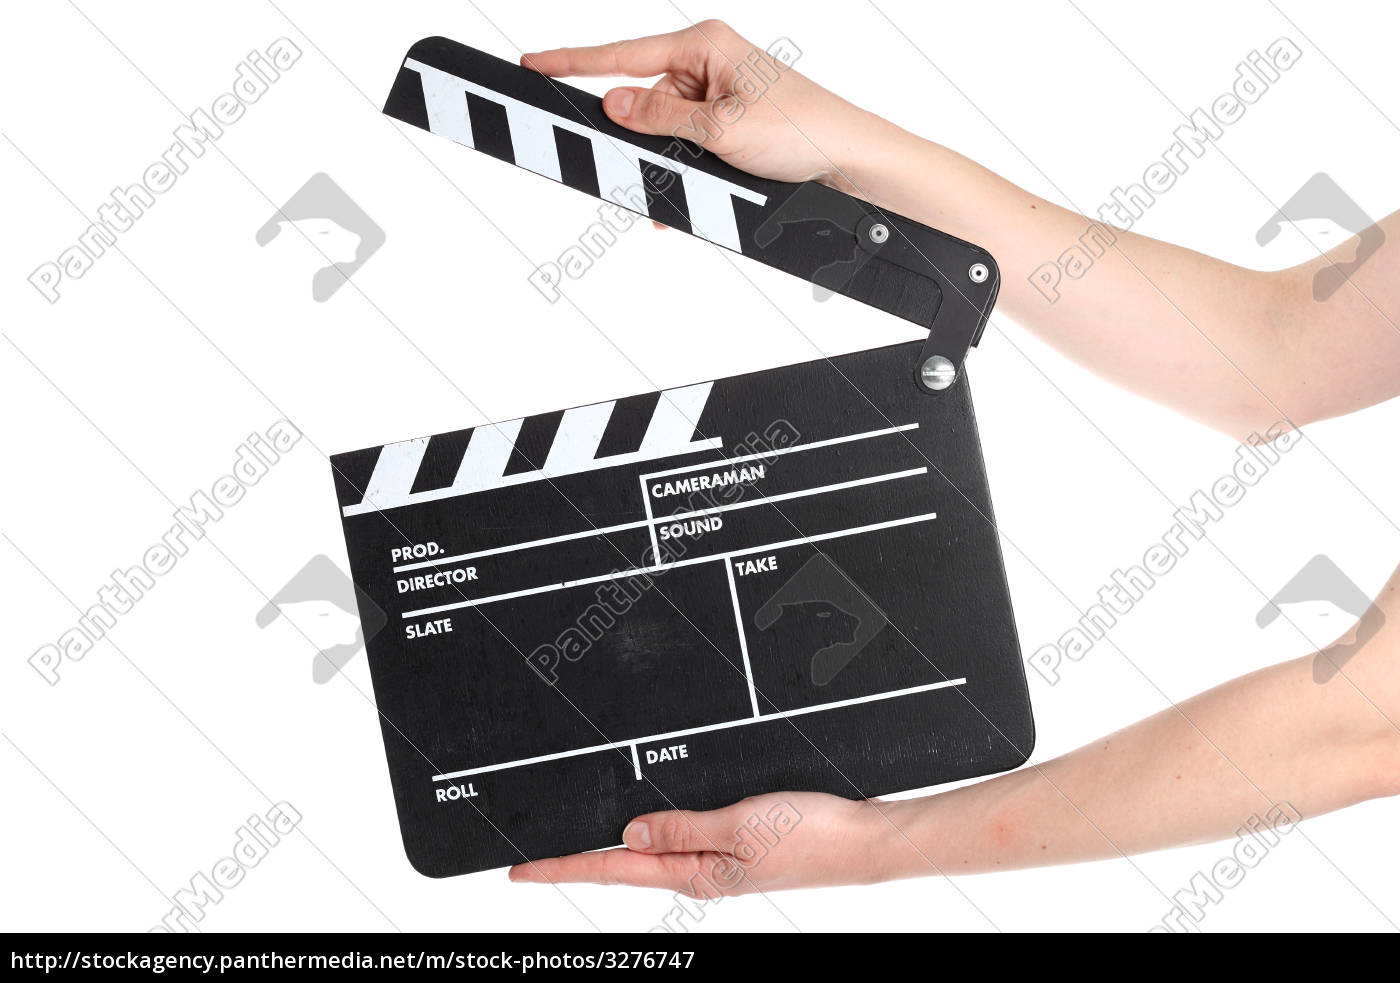 hollywood, film, production - 3276747